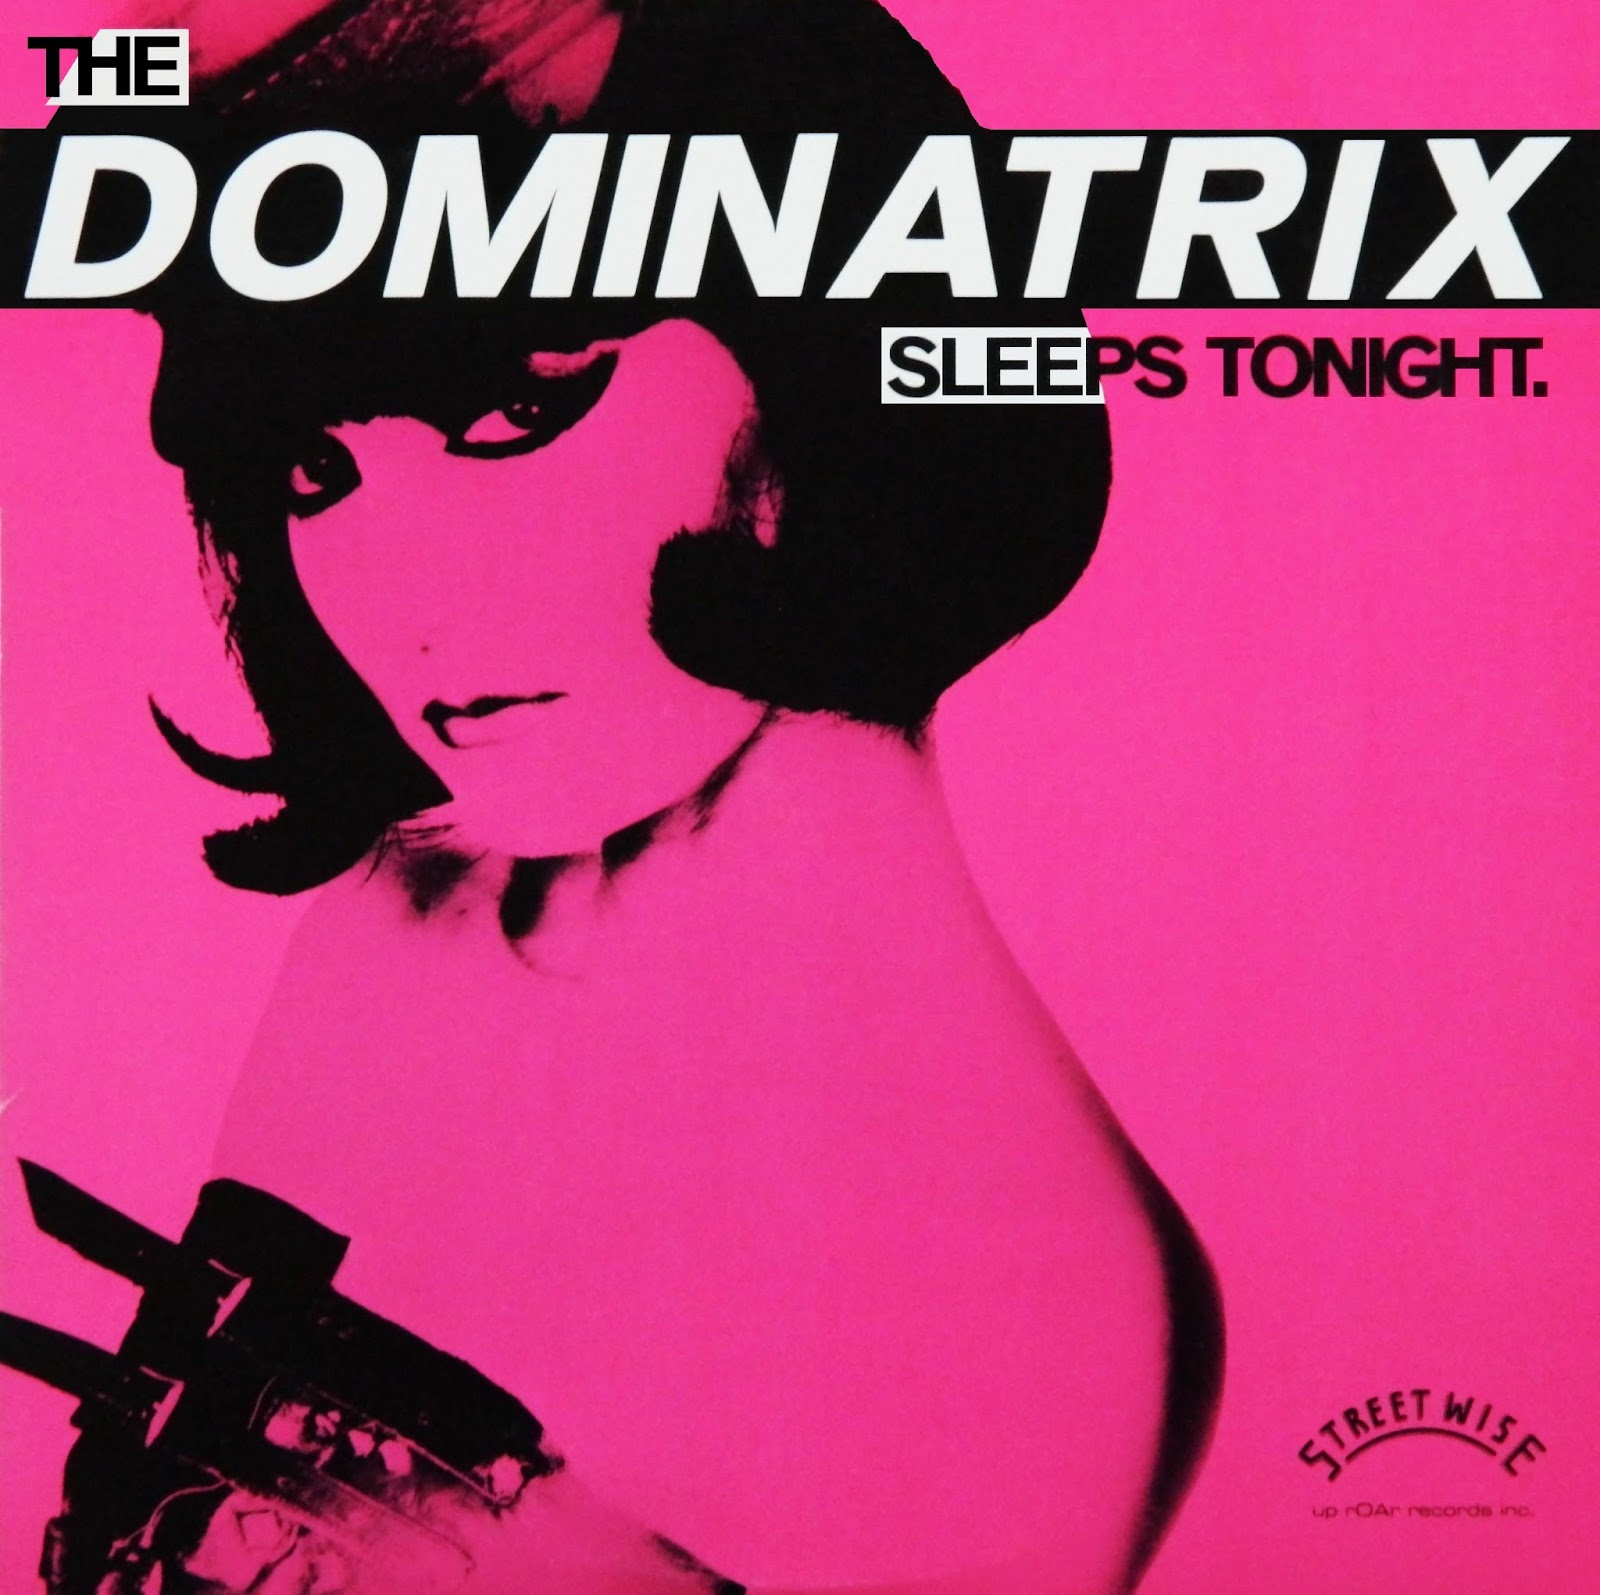 south east dominatrix sleep